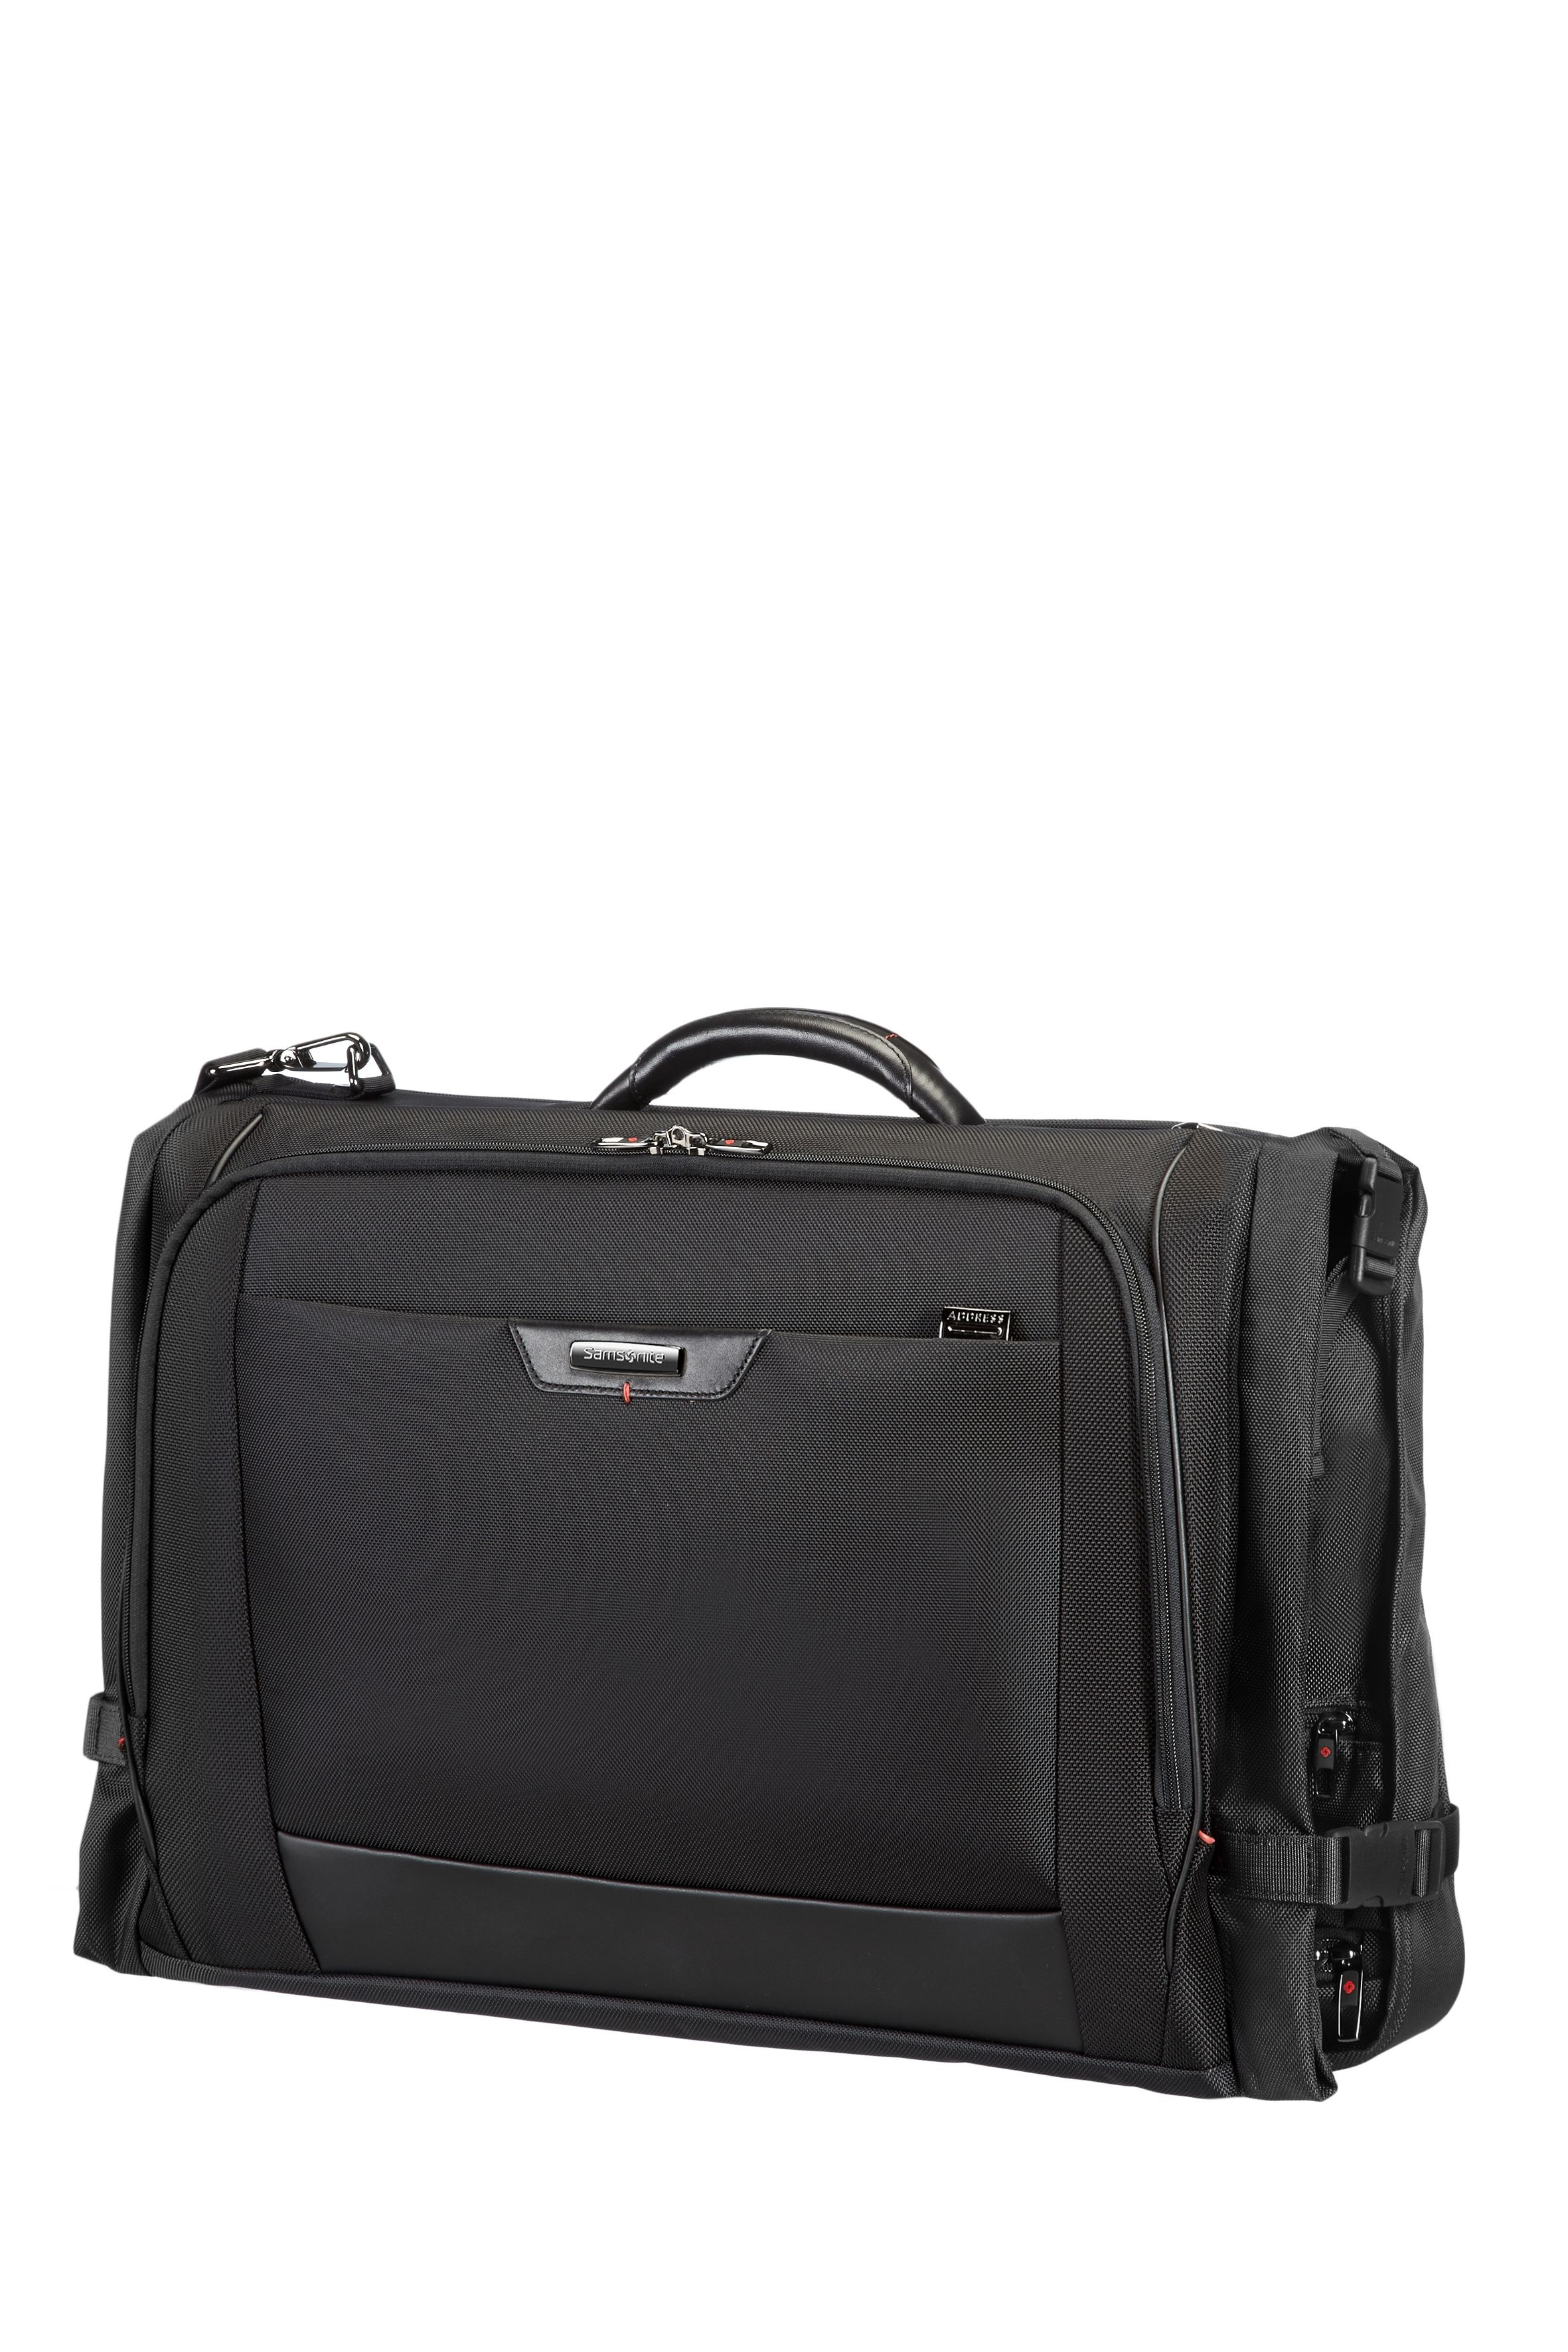 Samsonite Pro Dlx  Trifold Garment Bag In Black For Men